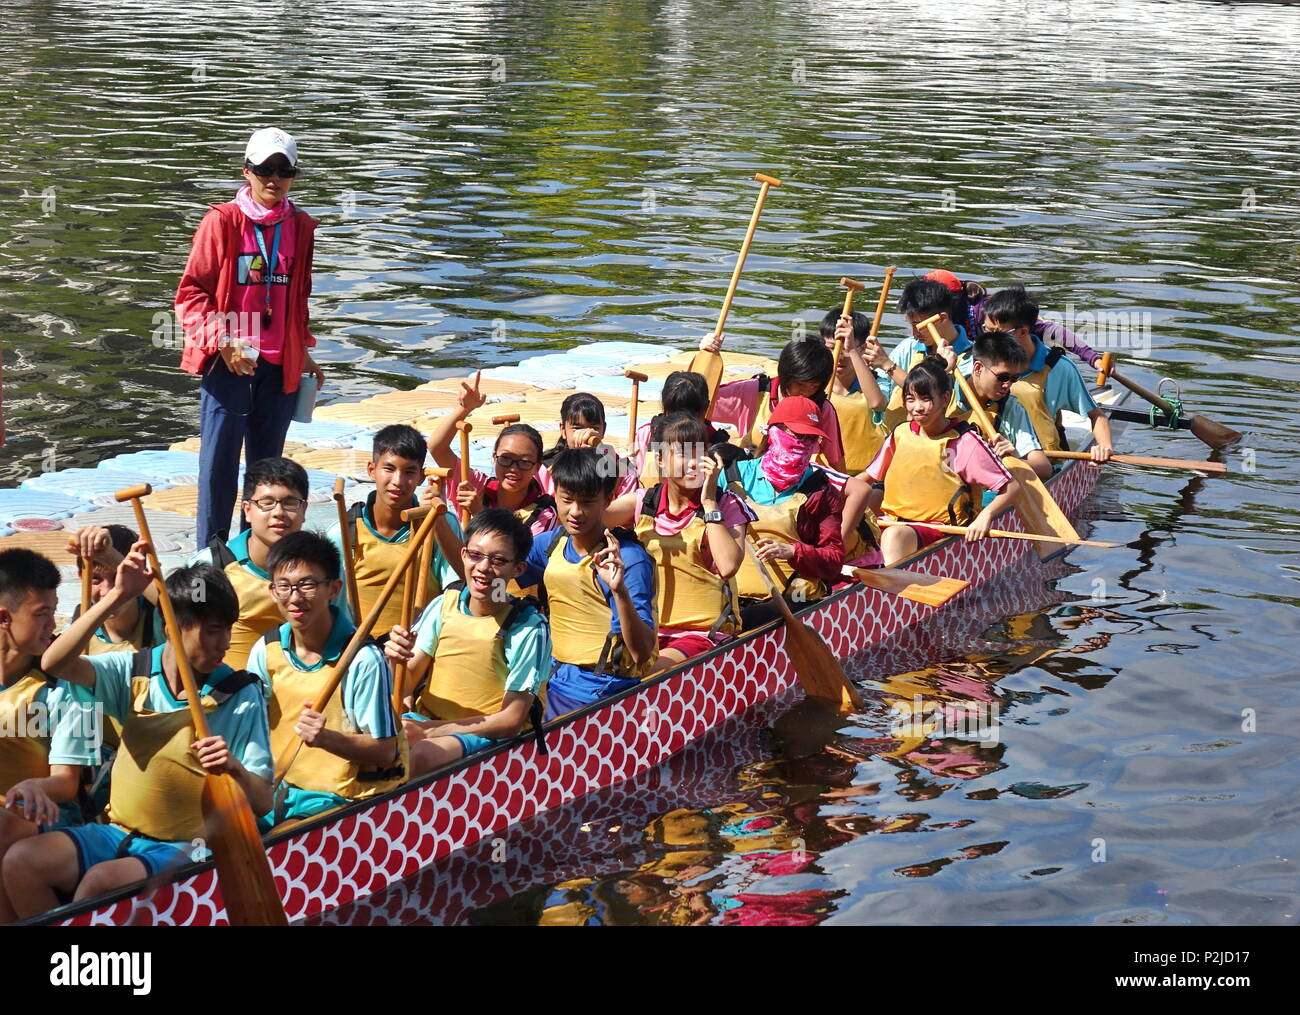 KAOHSIUNG, TAIWAN -- JUNE 10, 2018: A team of junior high school students prepares for the upcoming Dragon Boat Races. - Stock Image